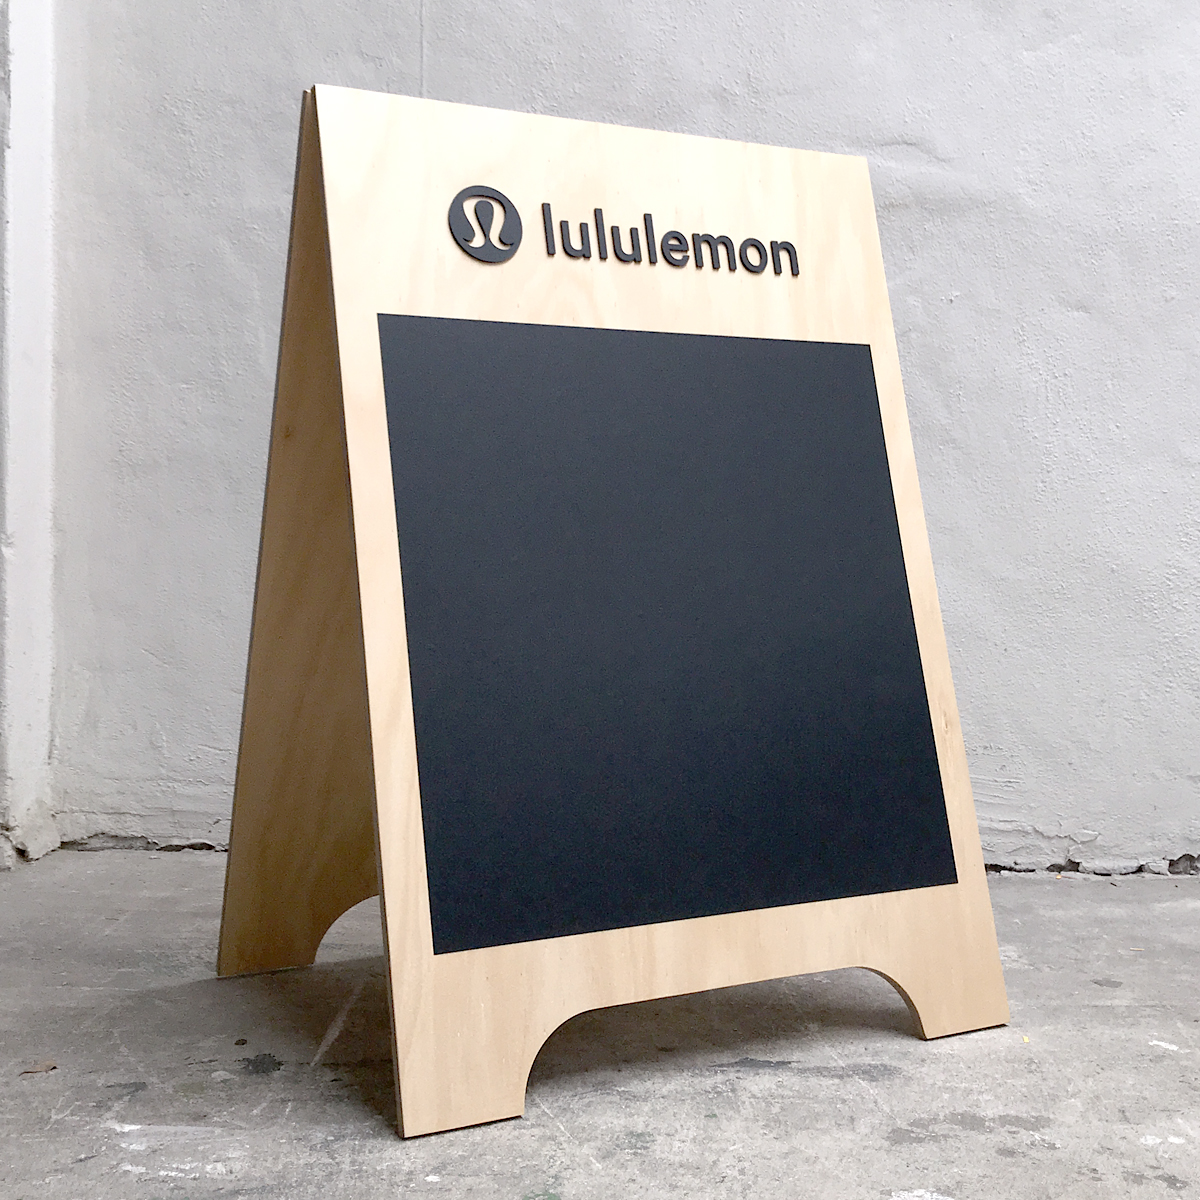 https://thelaserco.com/wp-content/uploads/2020/07/27_Wooden-event-A-frame-sign-plywood.jpg